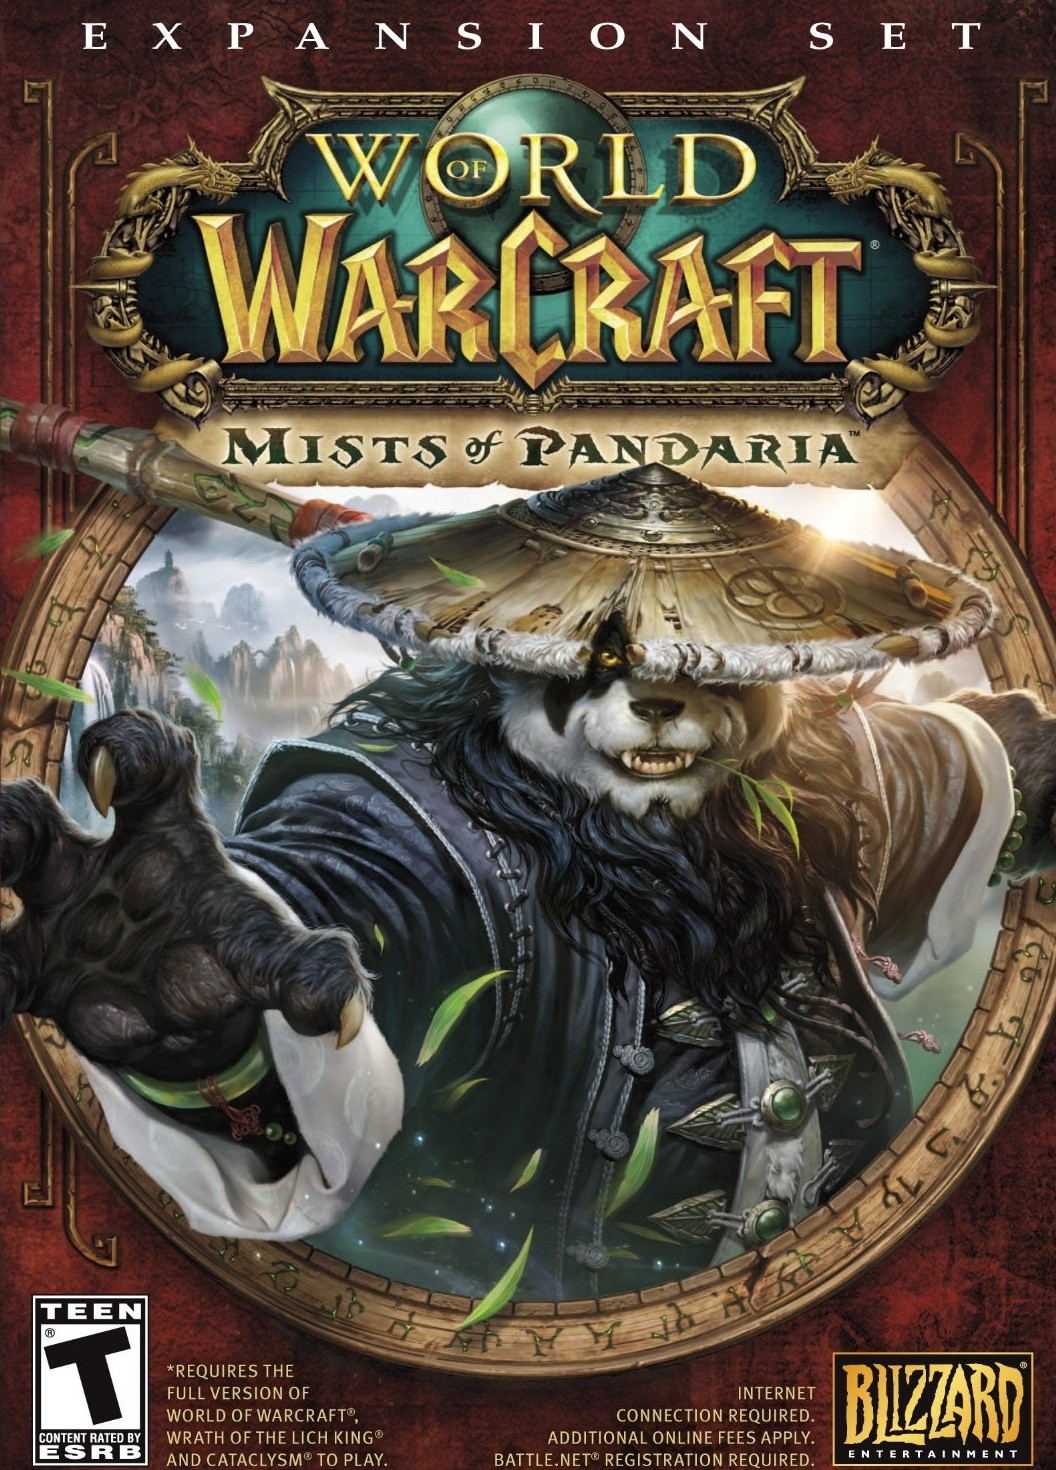 World of Warcraft: Mists of Pandaria 魔兽世界:熊猫人之谜